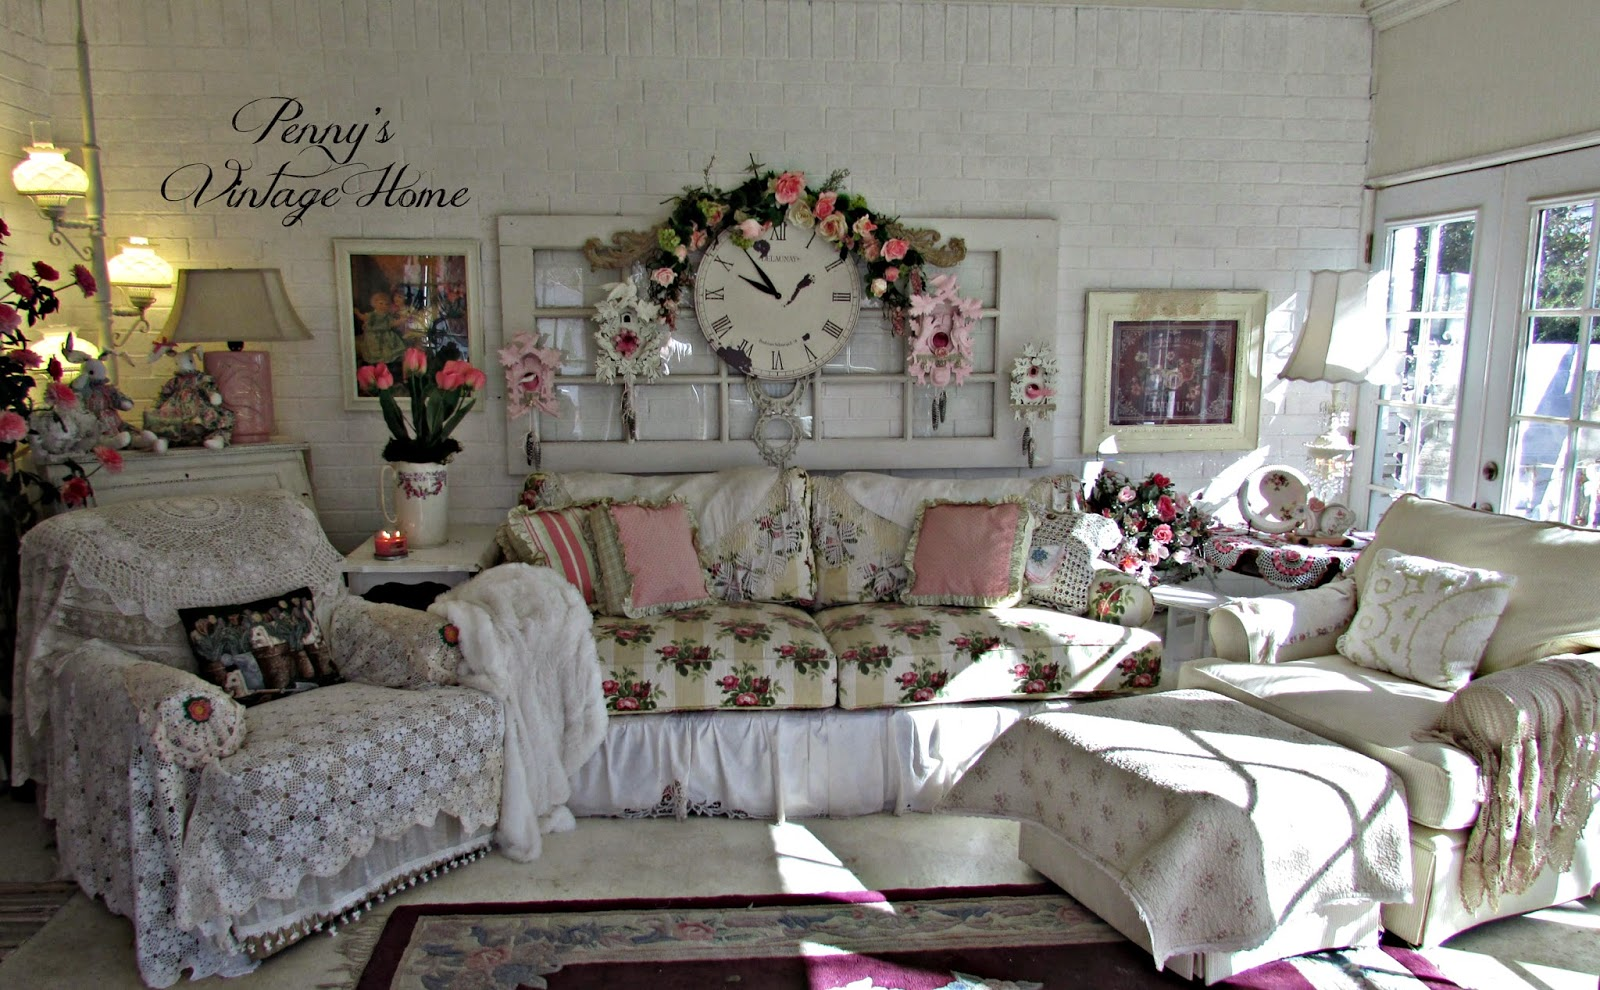 Penny's Vintage Home: New Furniture Arrangement in the Sunroom